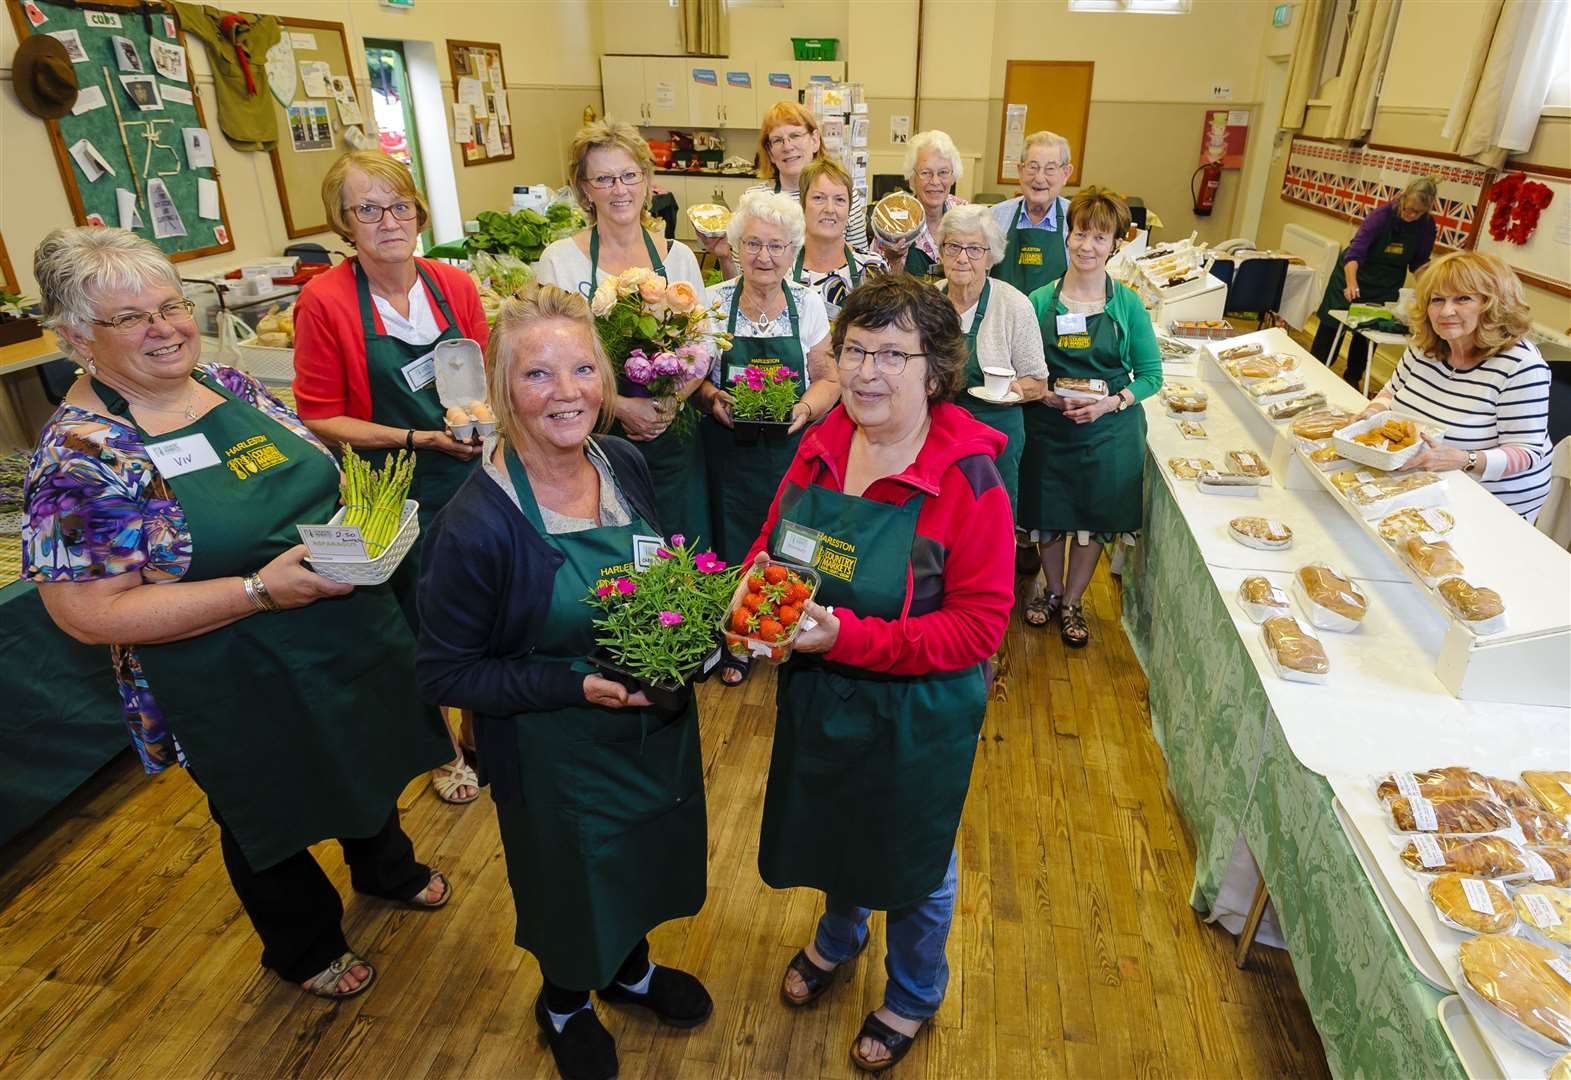 Continued success for one of Norfolk's oldest farmers' markets